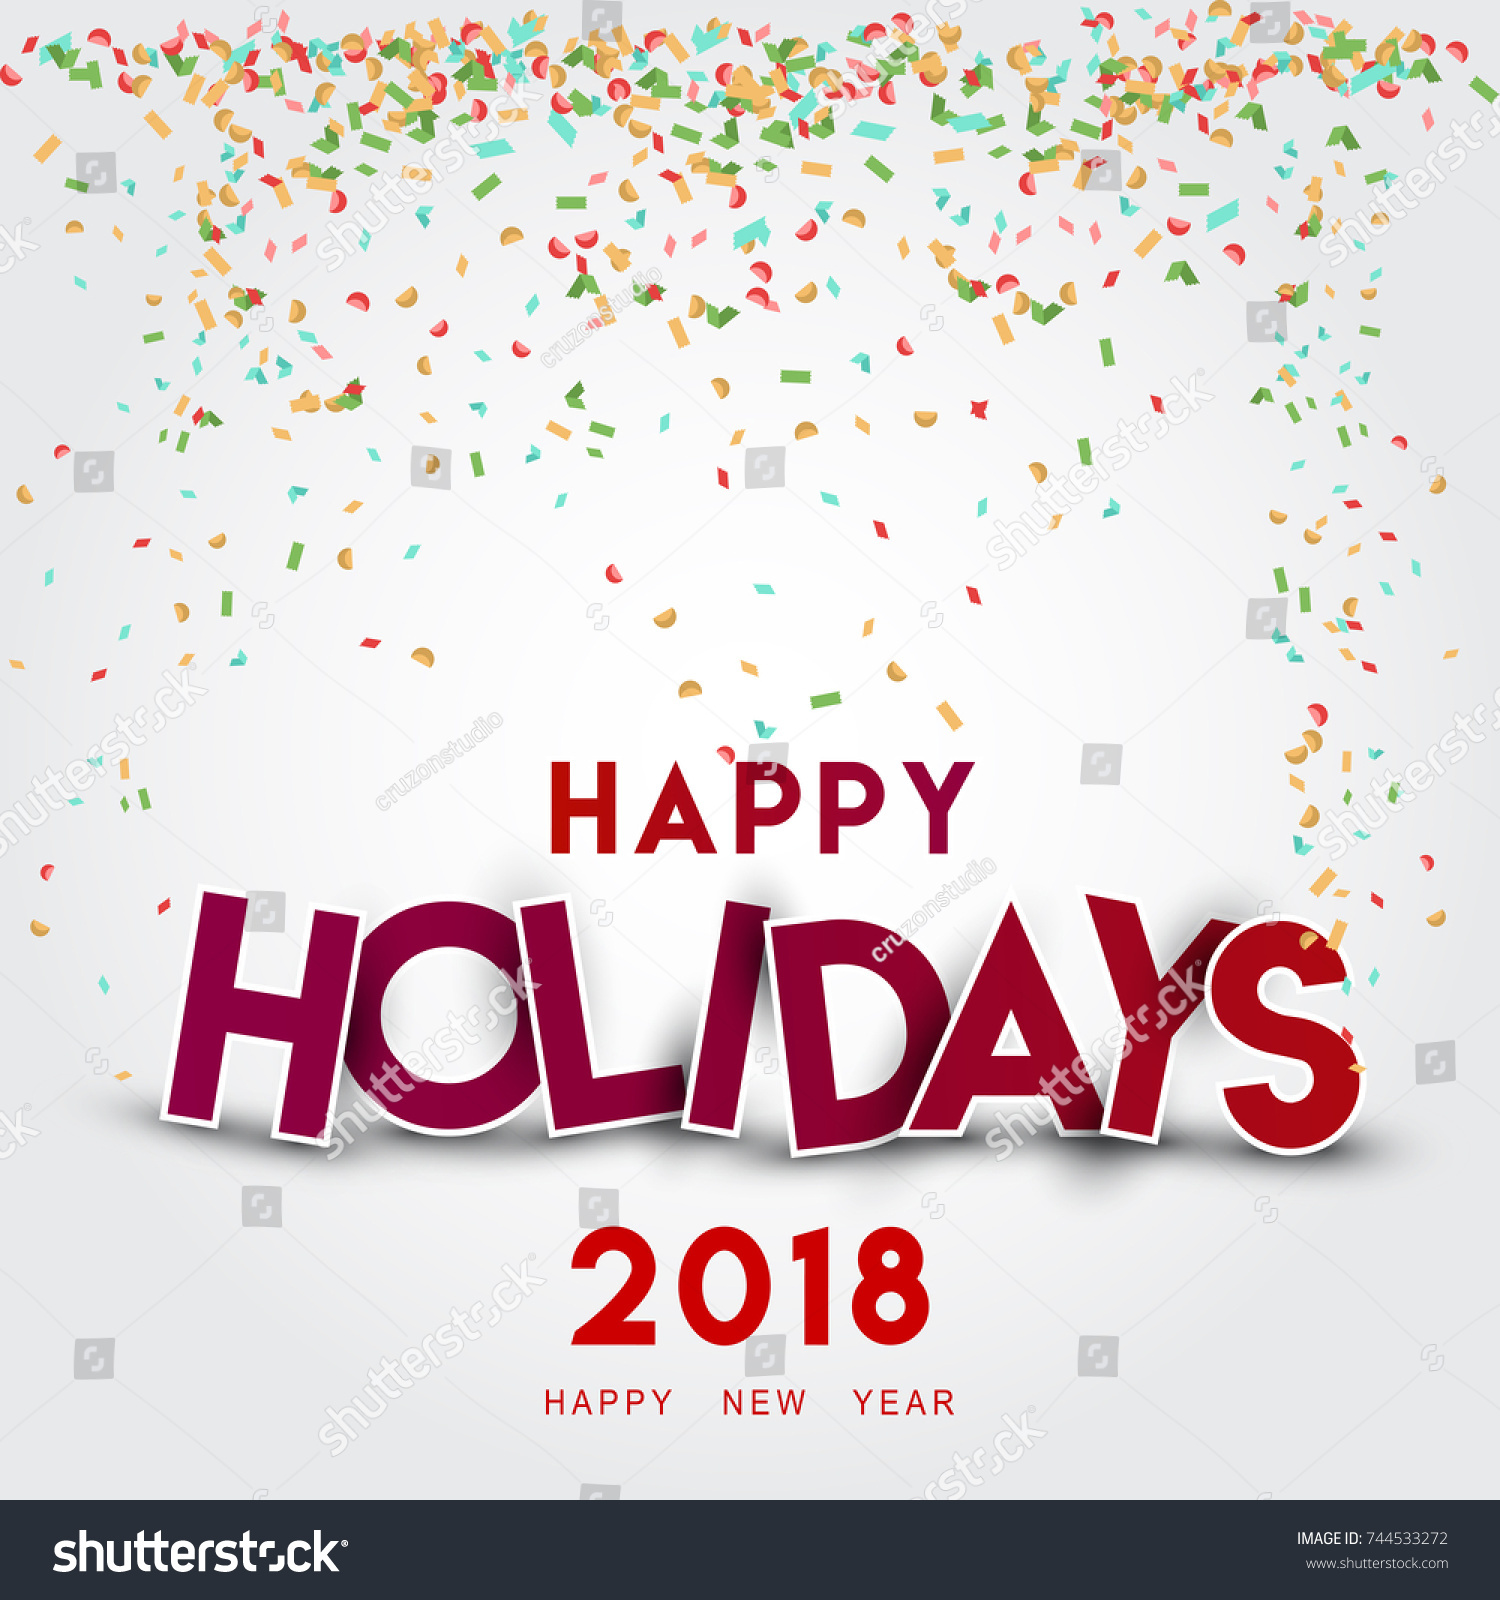 Happy Holidays Lettering Christmas Merry Christmas Stock Vector ...